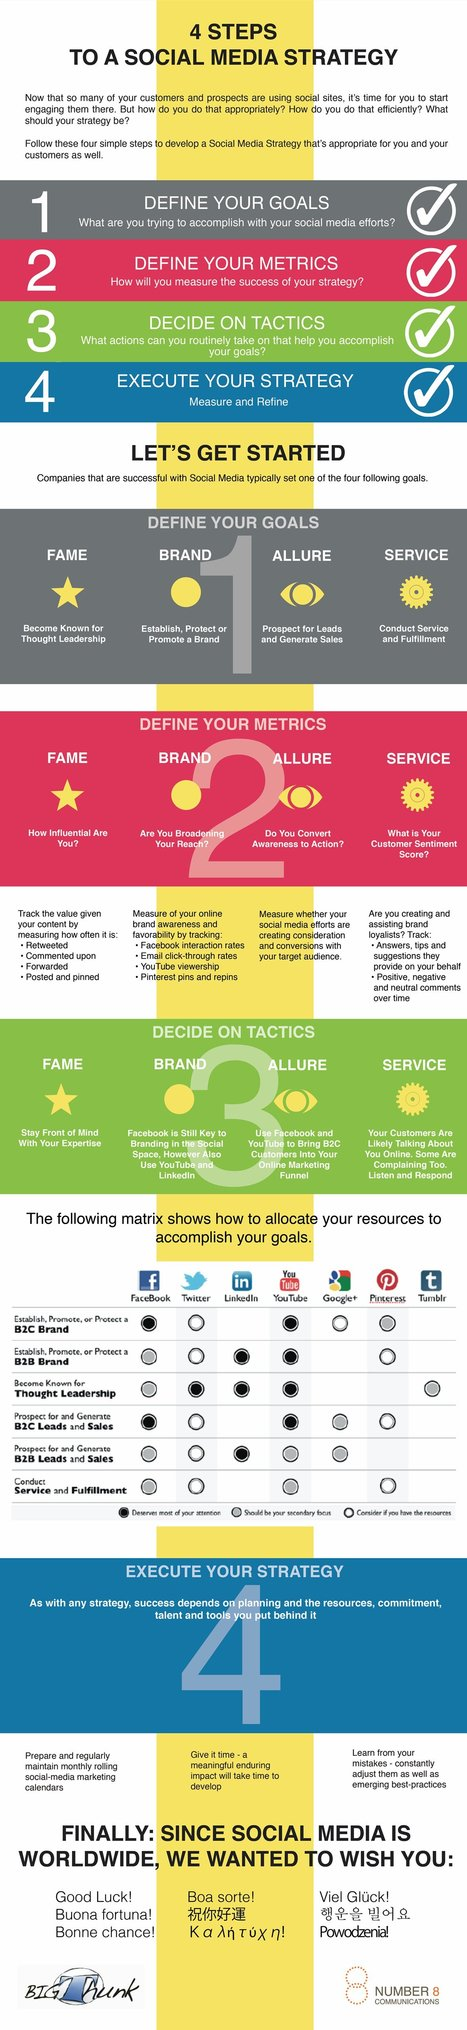 Infographic: The 4 Steps to Social Media Marketing | Personal Branding and Professional networks - @Socialfave @TheMisterFavor @TOOLS_BOX_DEV @TOOLS_BOX_EUR @P_TREBAUL @DNAMktg @DNADatas @BRETAGNE_CHARME @TOOLS_BOX_IND @TOOLS_BOX_ITA @TOOLS_BOX_UK @TOOLS_BOX_ESP @TOOLS_BOX_GER @TOOLS_BOX_DEV @TOOLS_BOX_BRA | Scoop.it